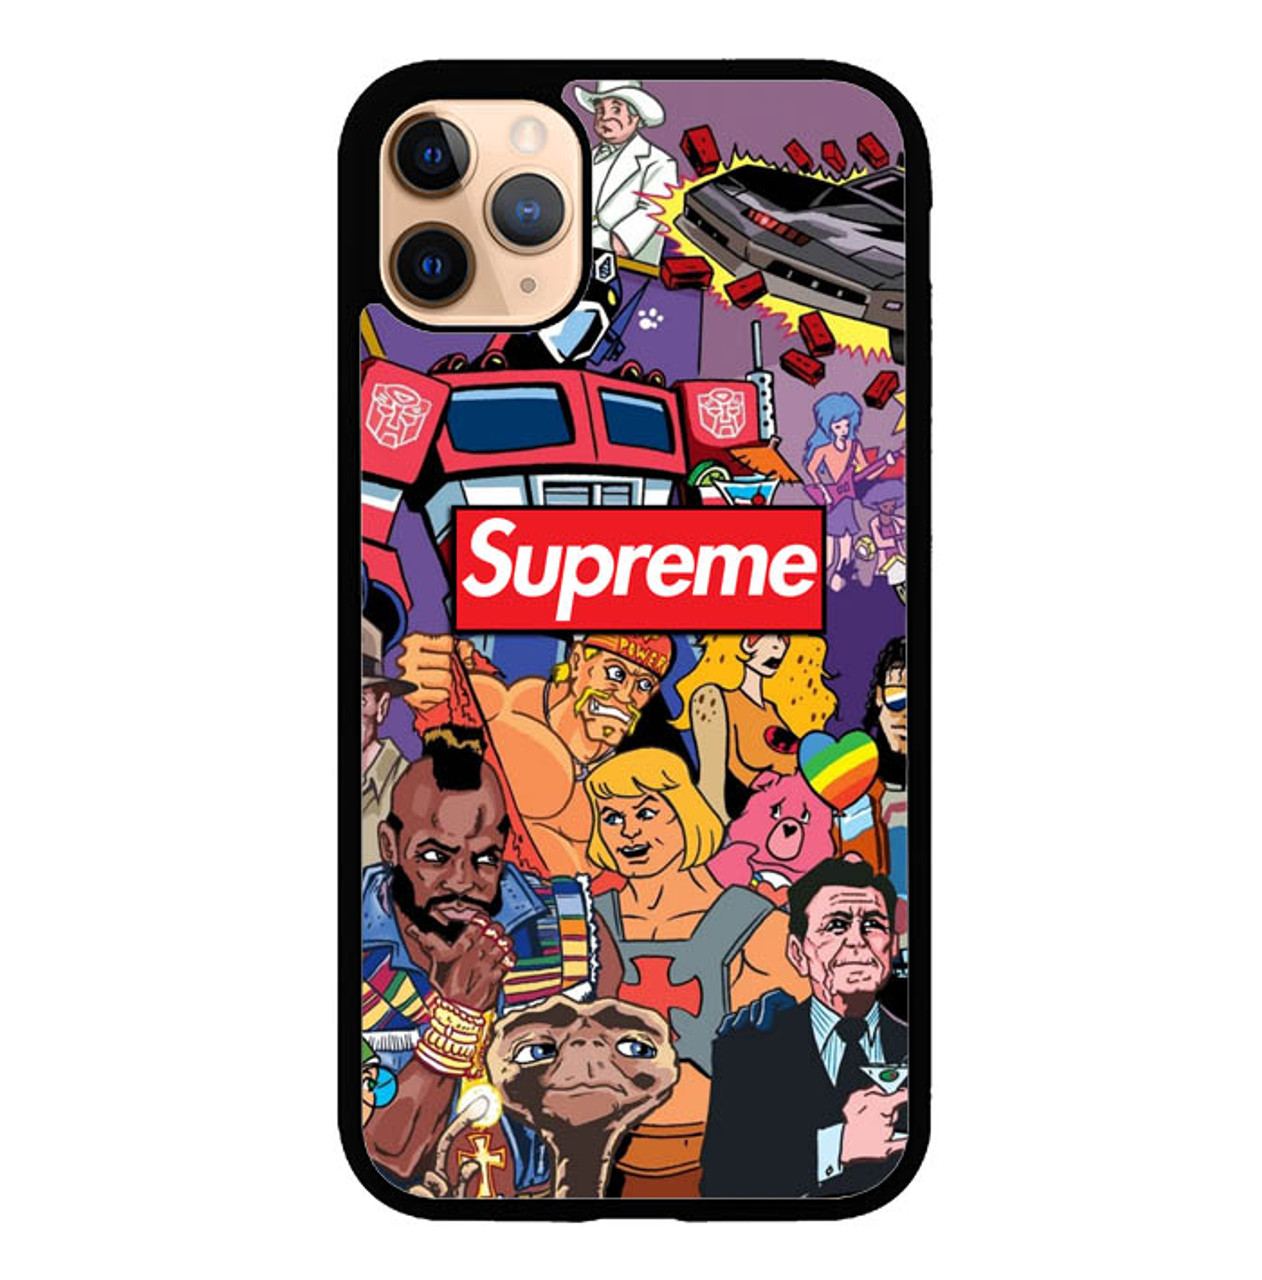 Supreme Wallpaper Peoples L2003 Iphone 11 Pro Case Flazzy Store